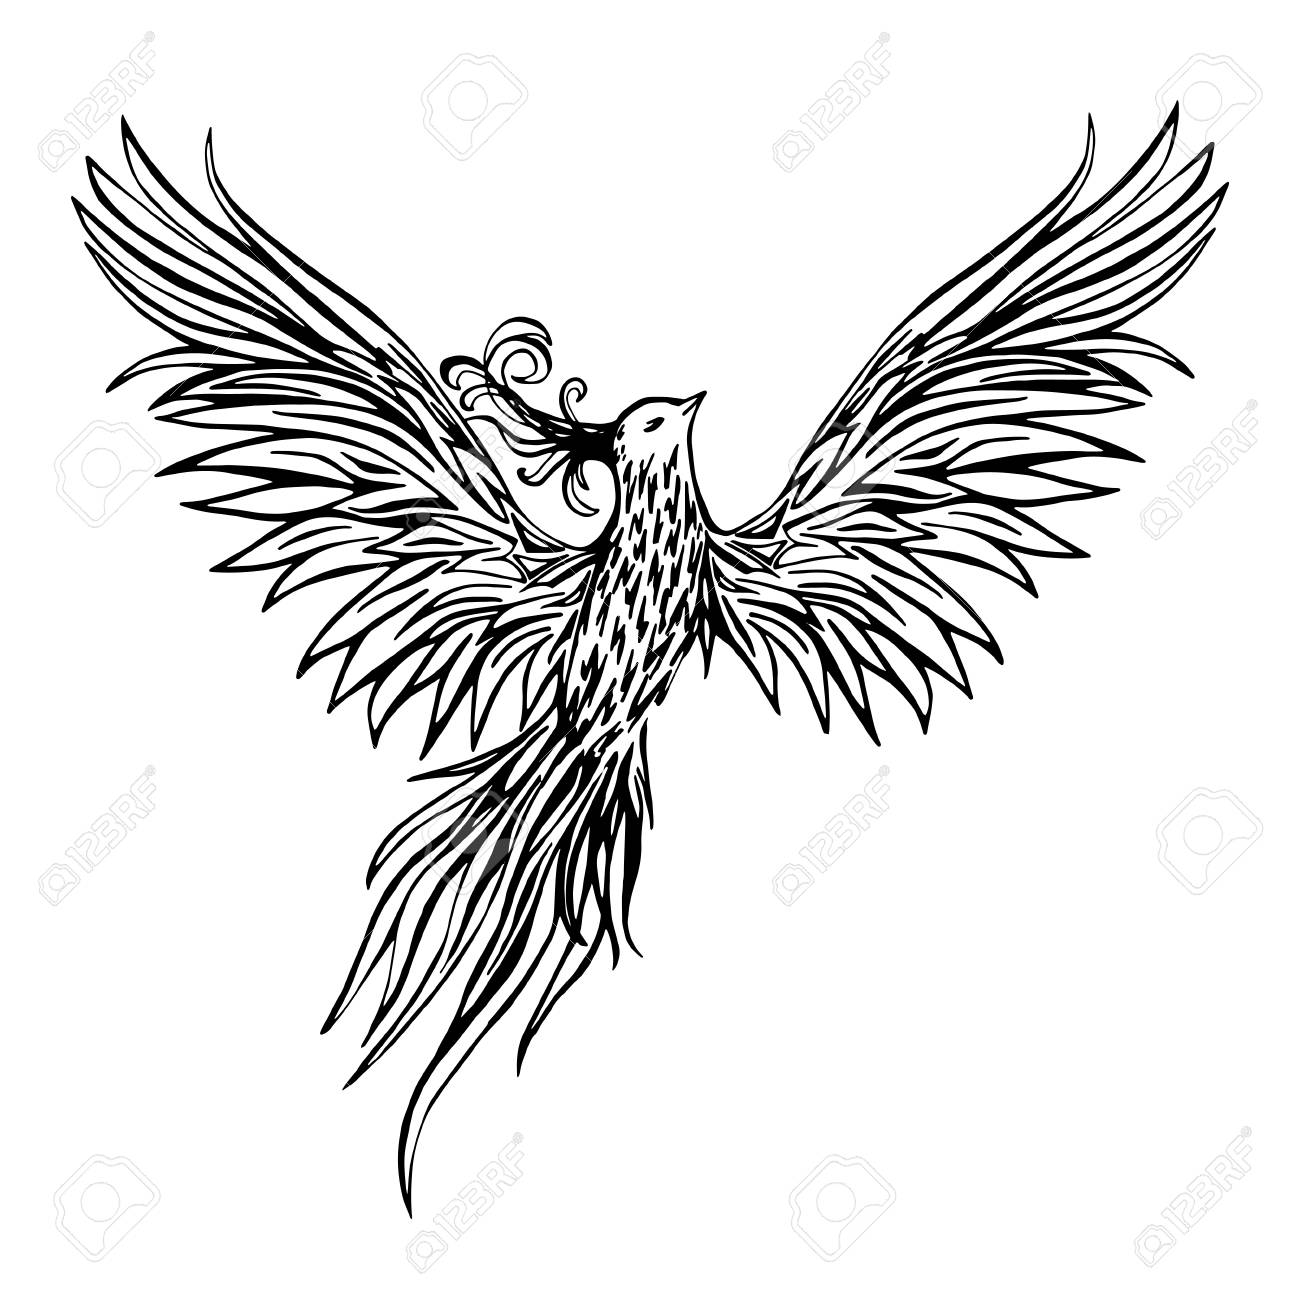 Phoenix Bird Tattoo Designs